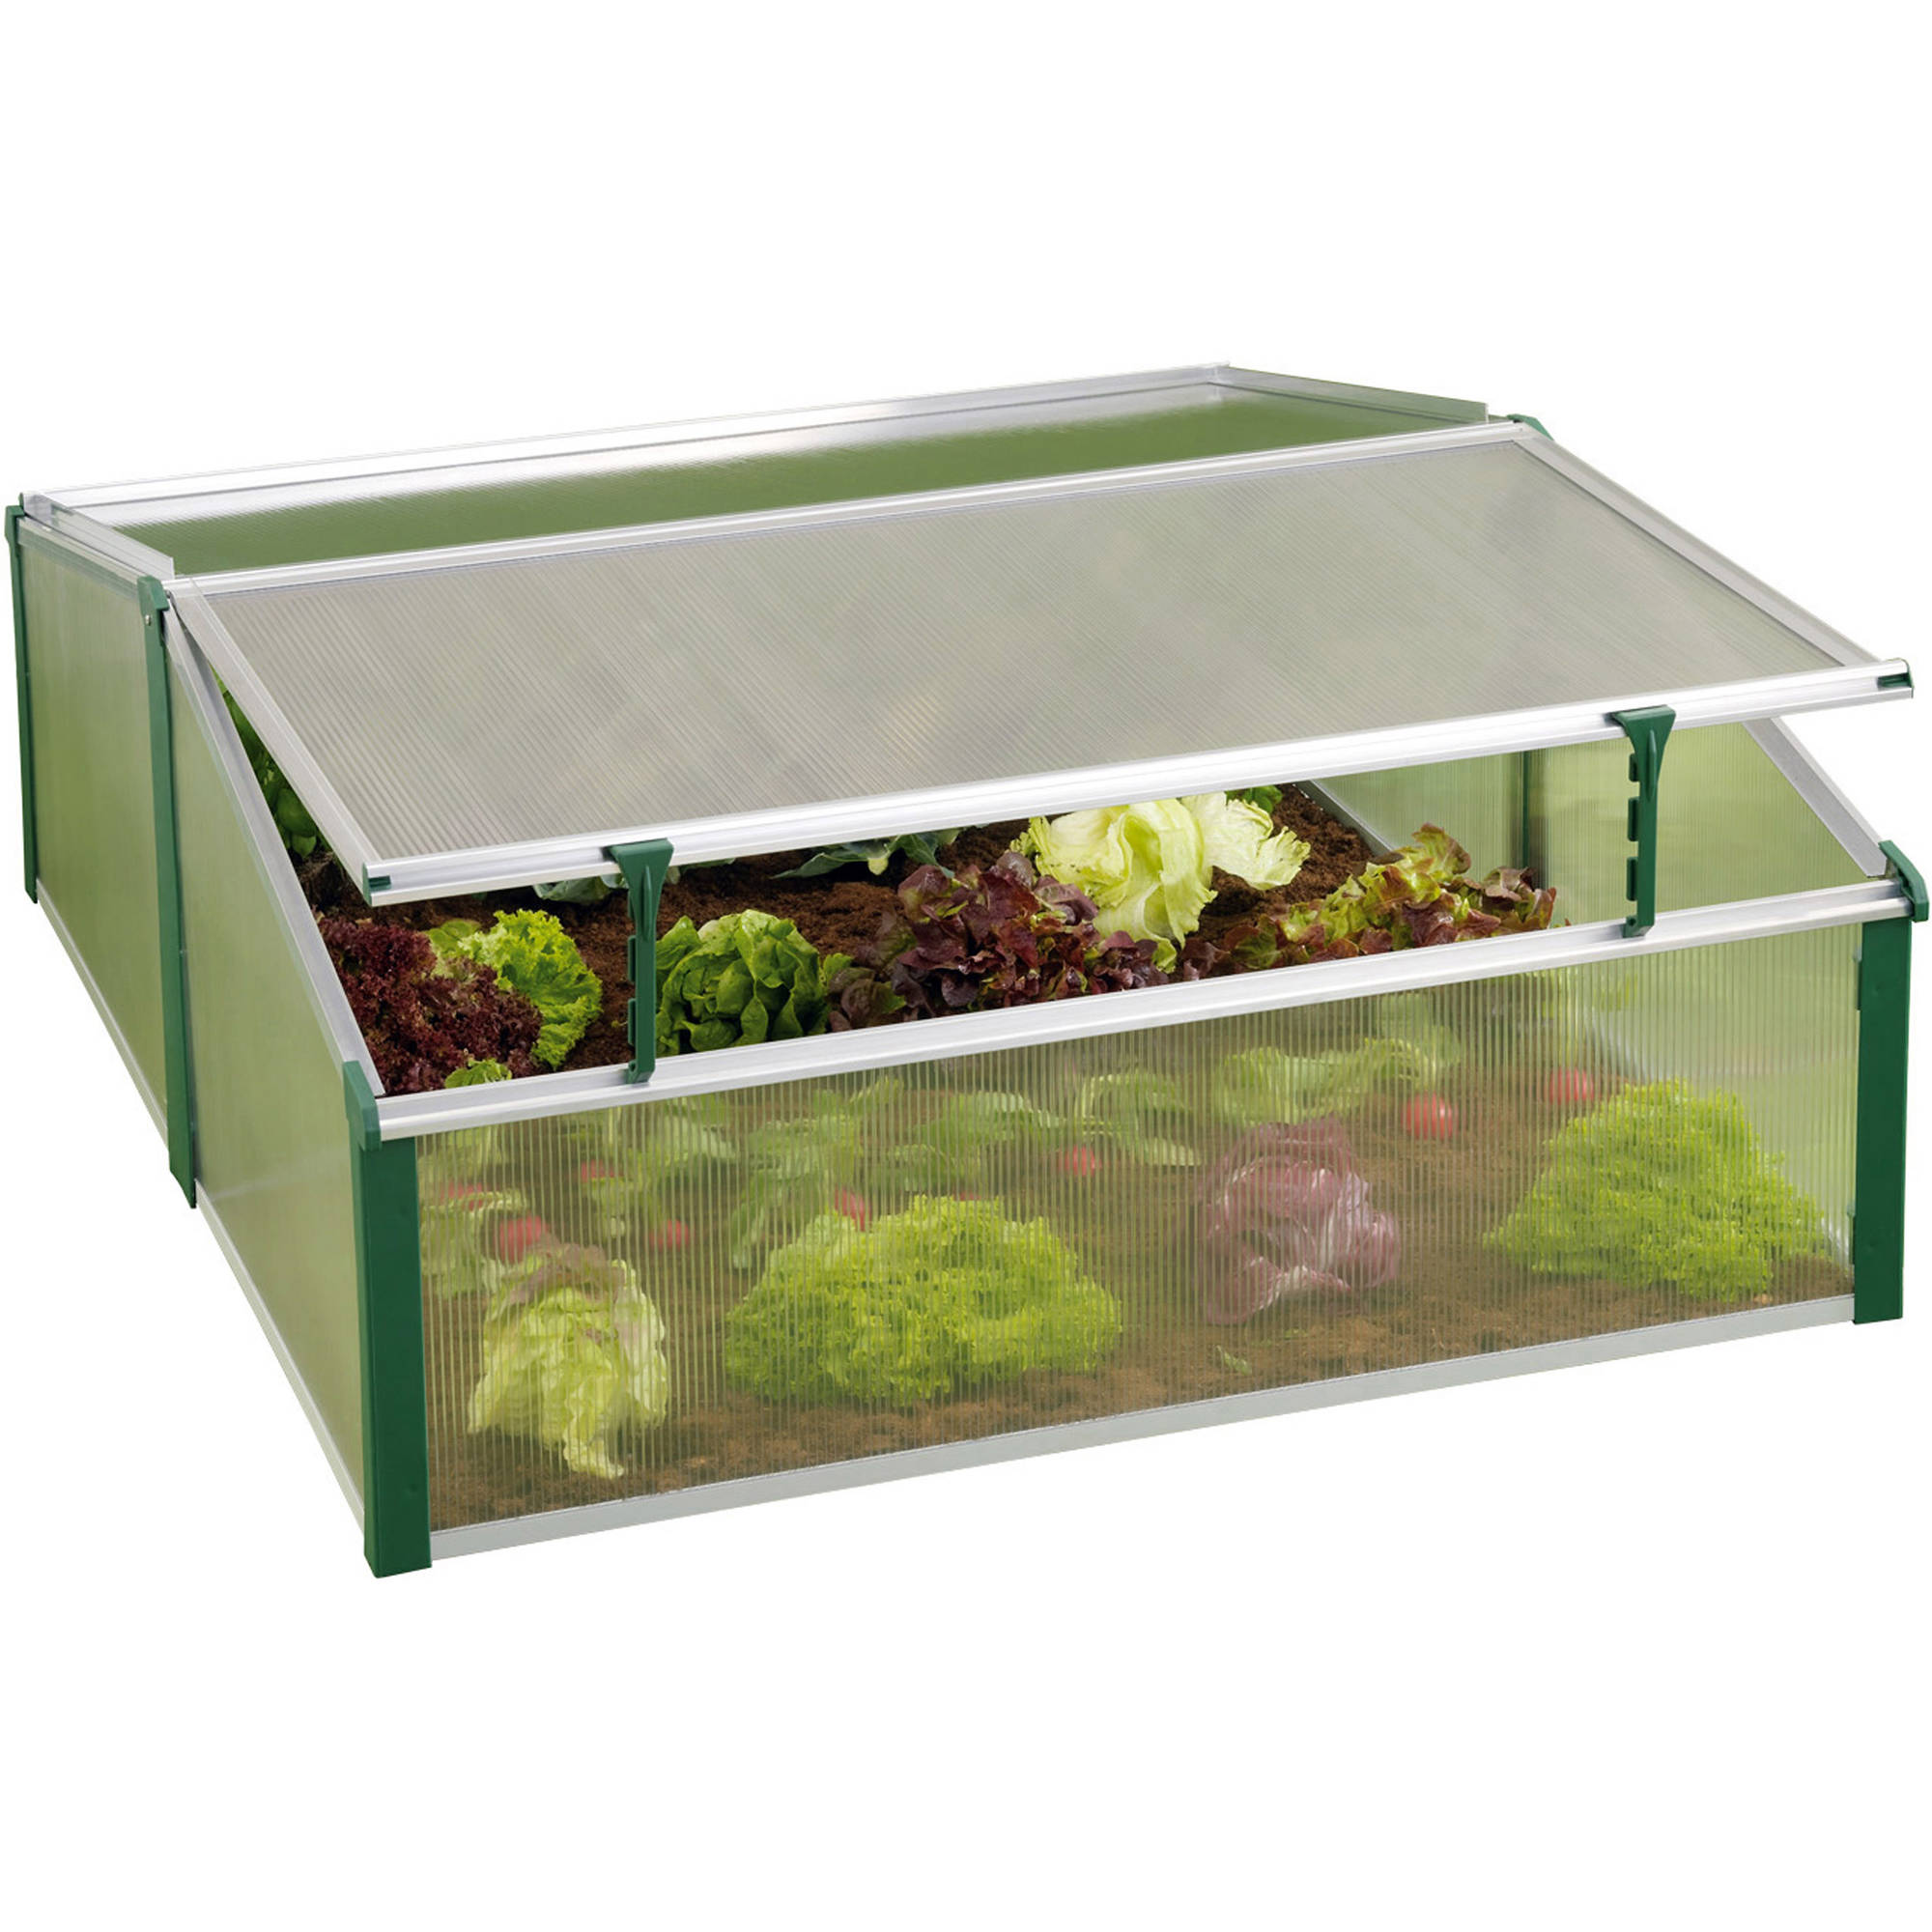 Image of Easy-Fix Double Cold Frame